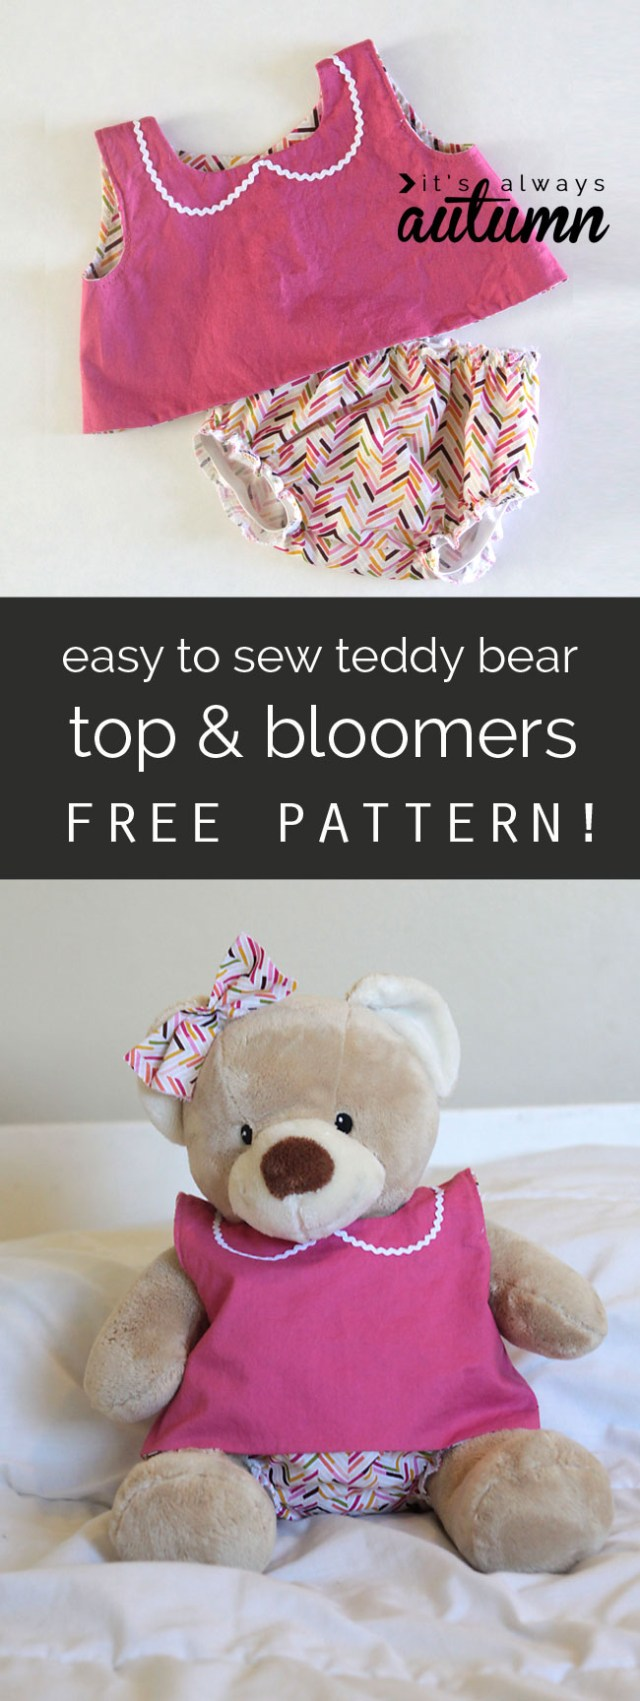 Teddy Bear Sewing Pattern Free Pattern For Easy To Sew Teddy Bear Clothes Build A Bear